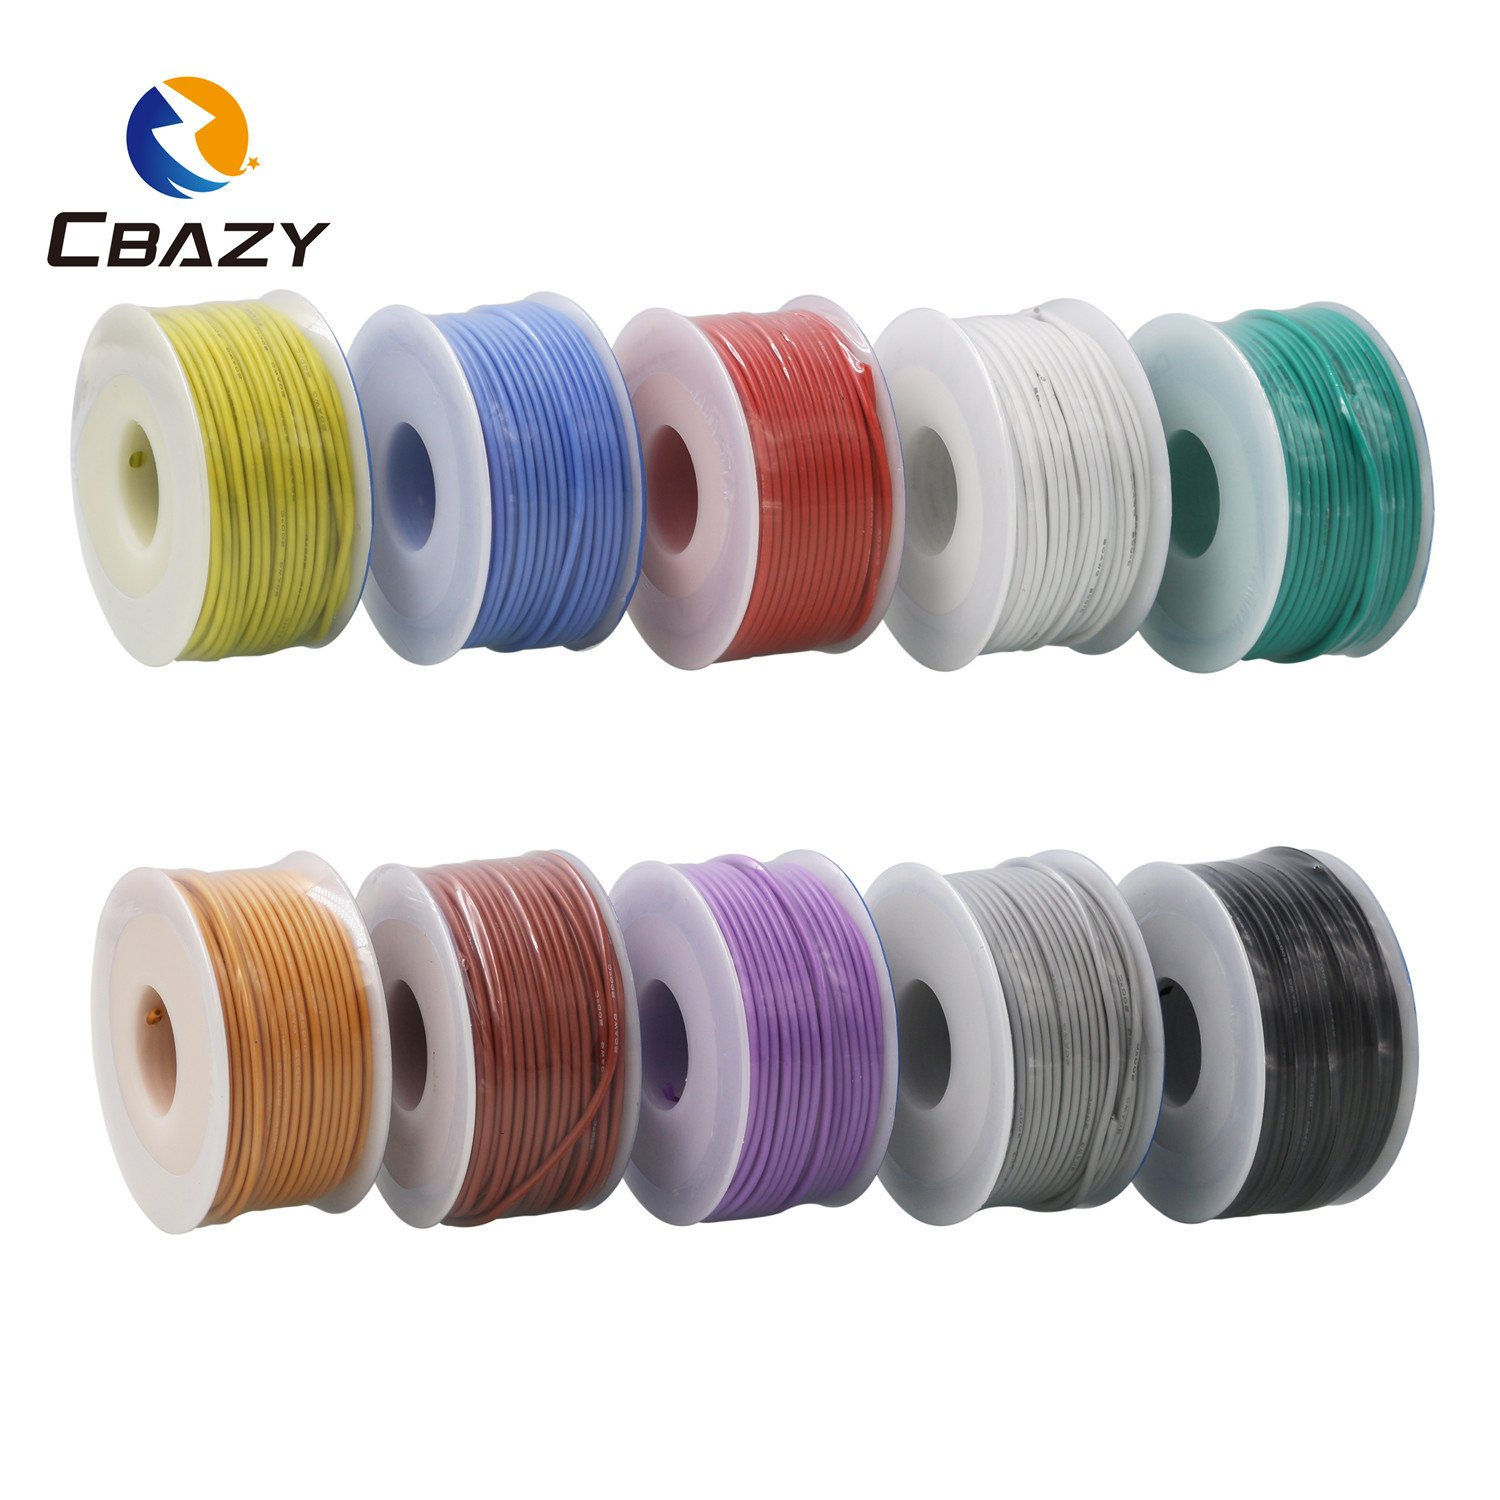 CBAZY™ Hook up Wire (Stranded Wire) 22 Gauge Flexible Silicone Wire 22AWG 25M (82 Feet) Electrical Wire Green by CBAZY (Image #7)